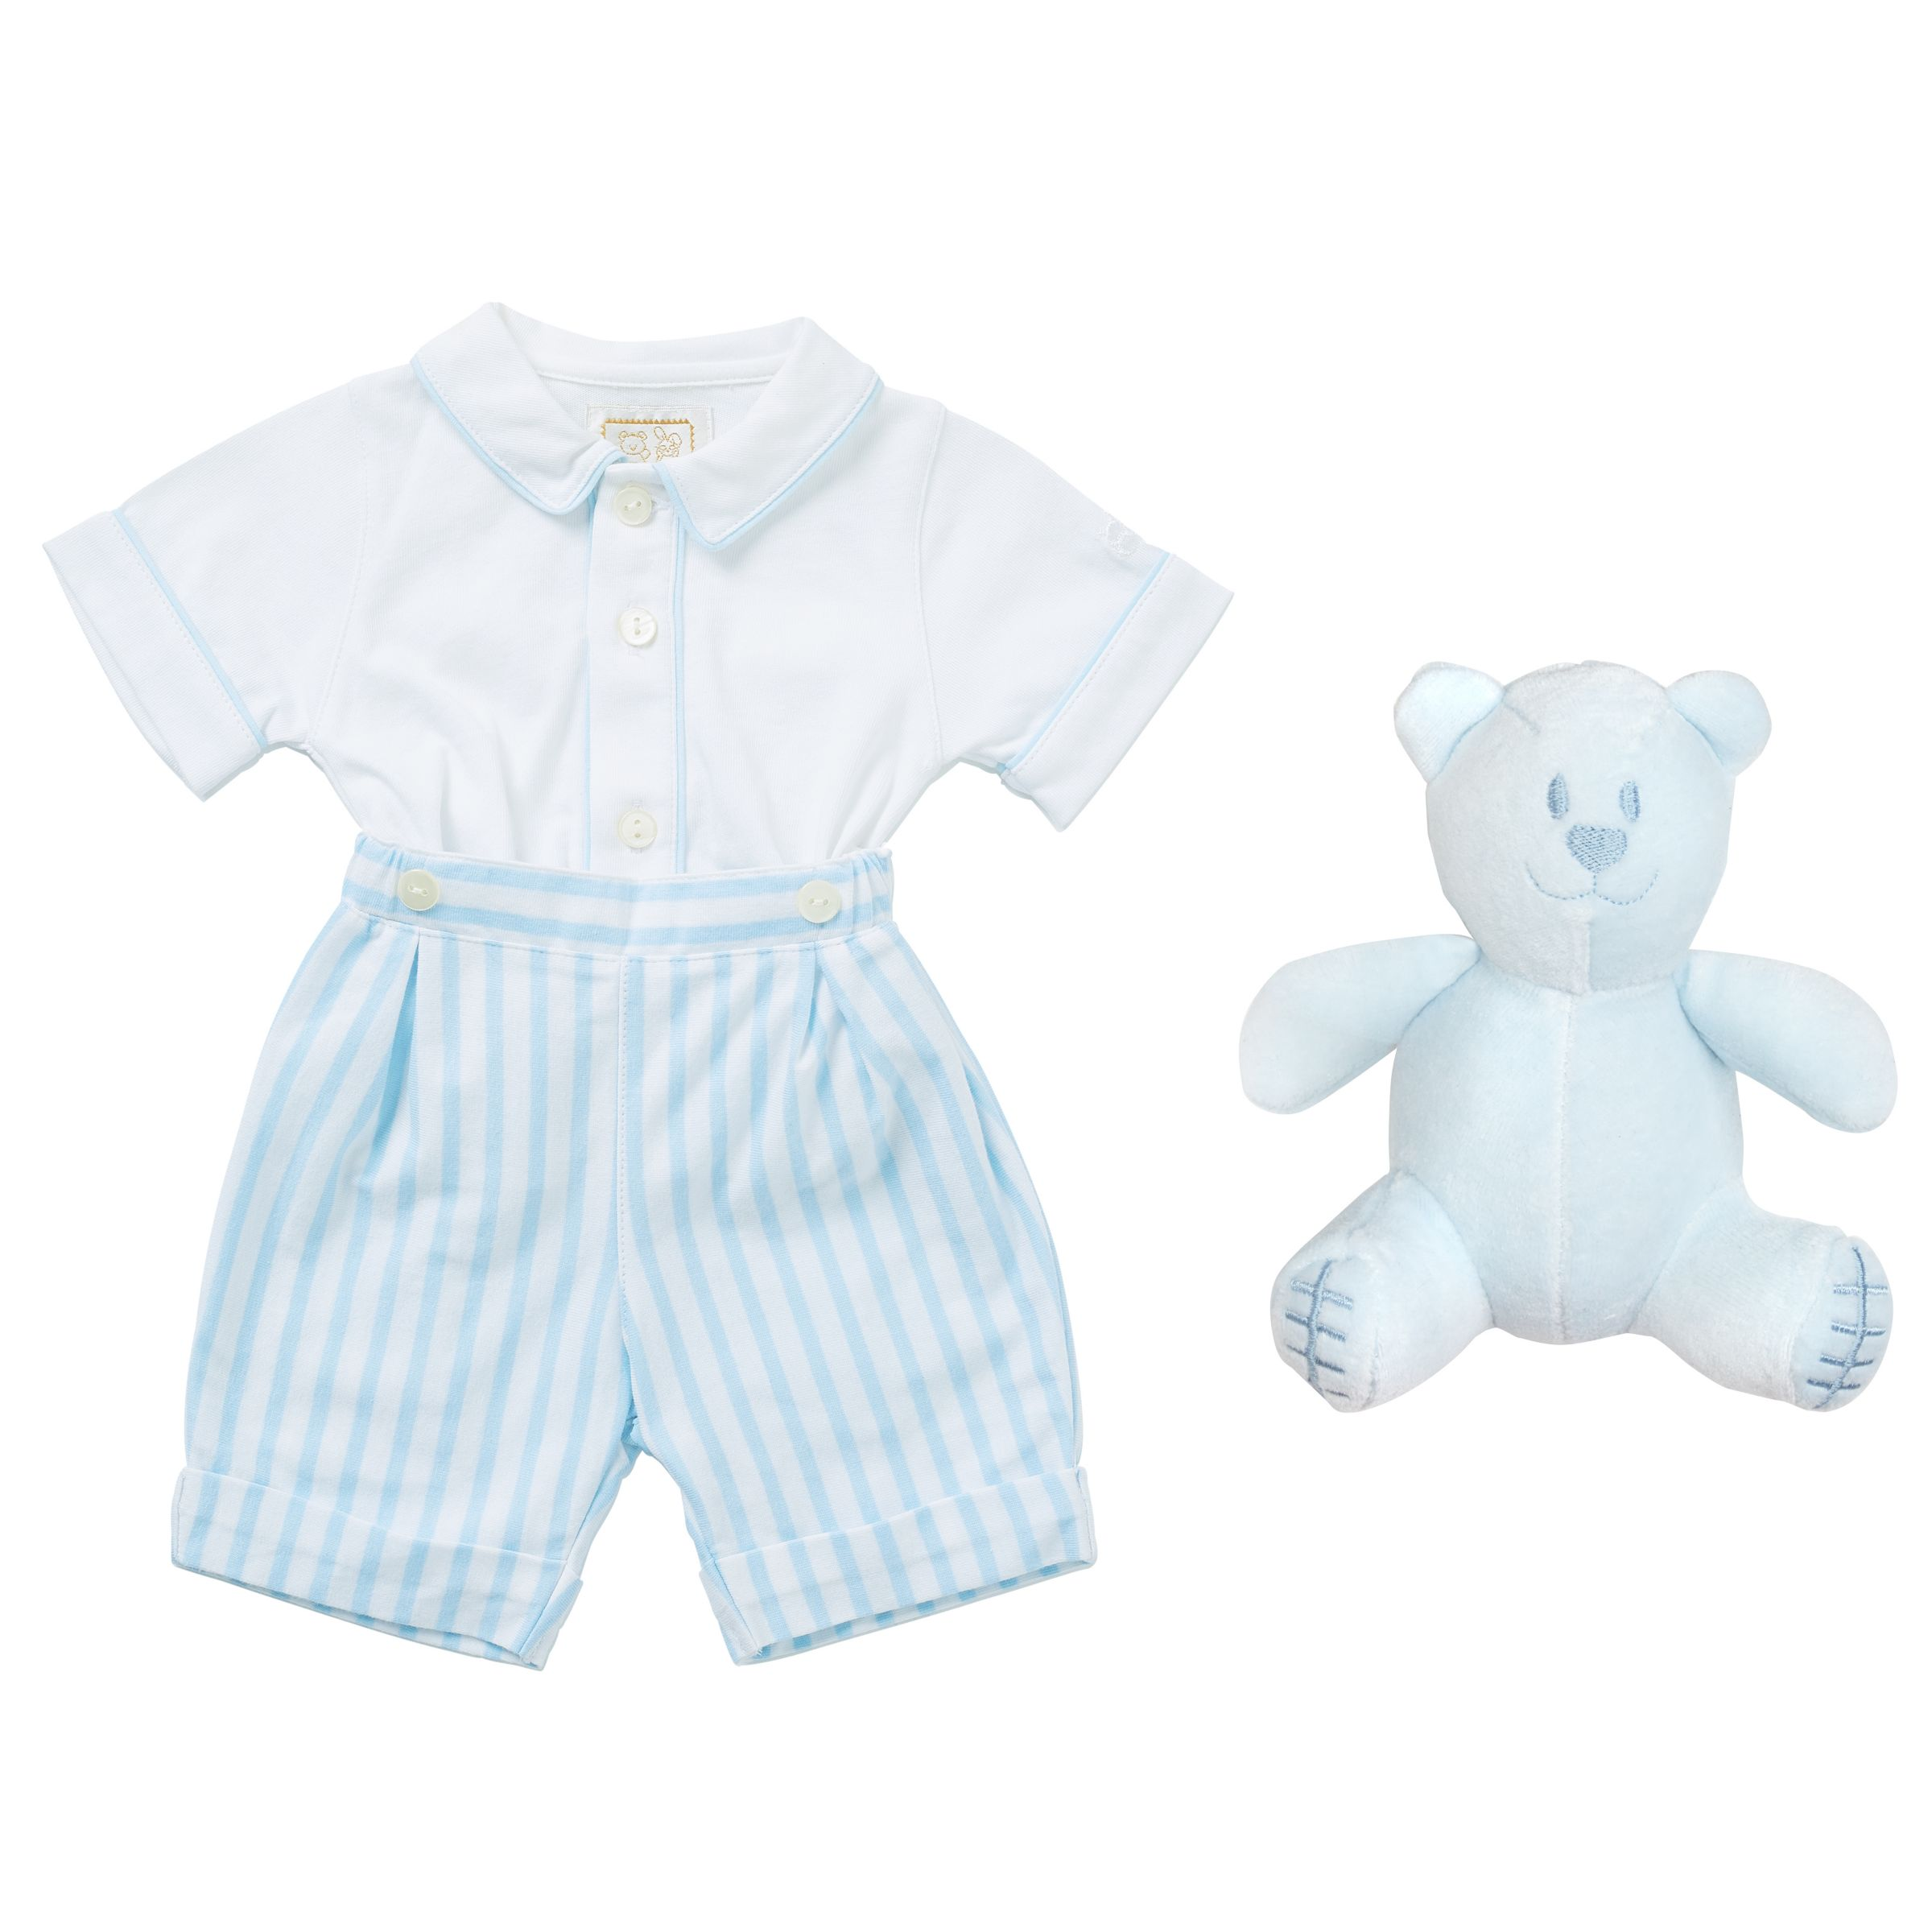 Emile et Rose Emile et Rose Baby Kennedy Two Piece Top and Shorts Set, Blue